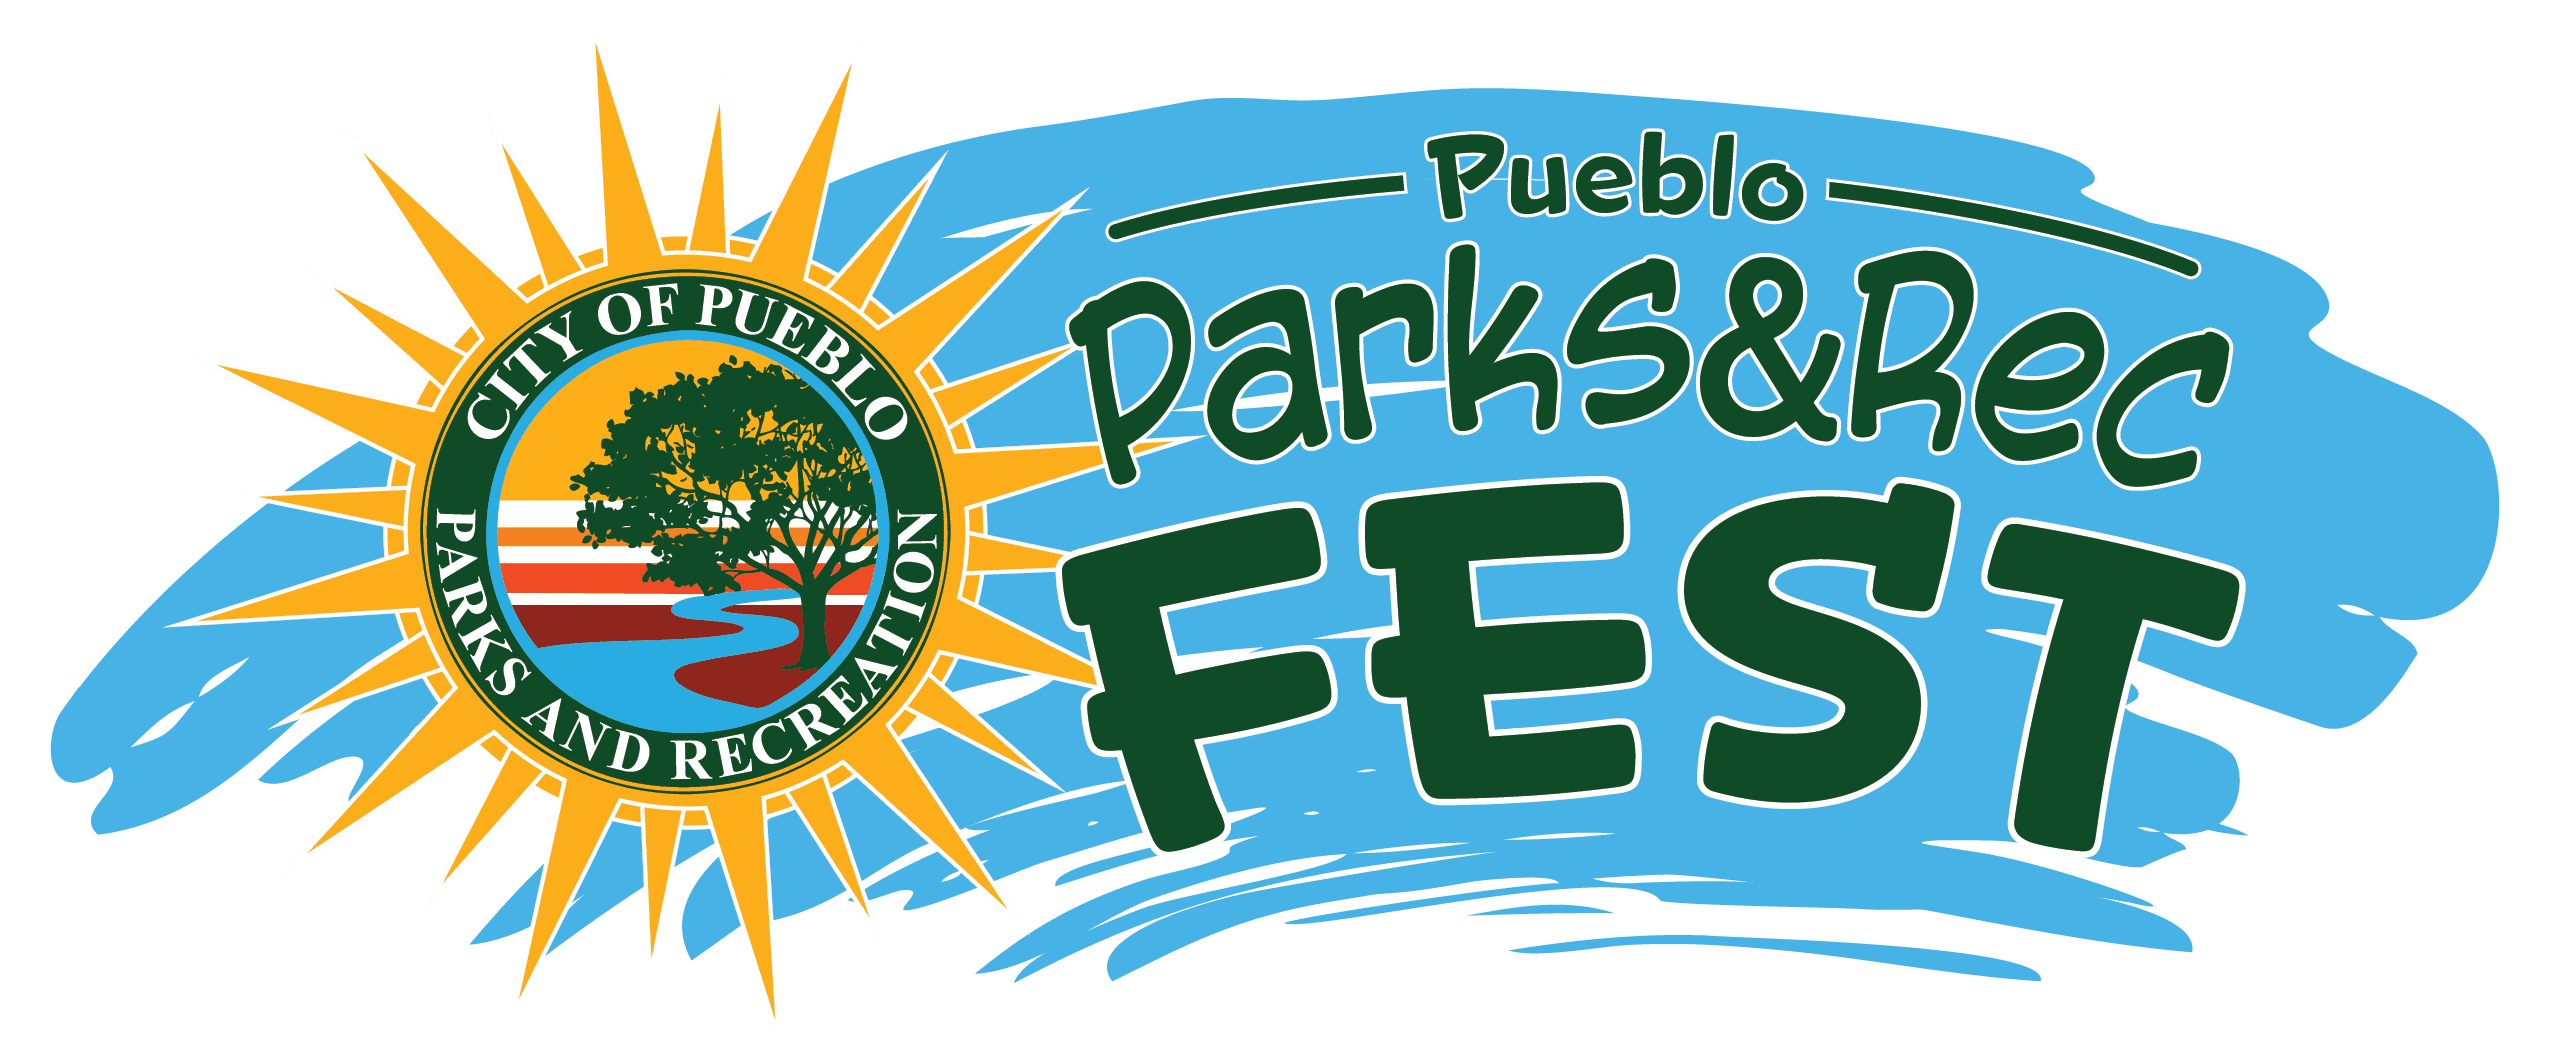 PPR Fest logo with clouds sun and text